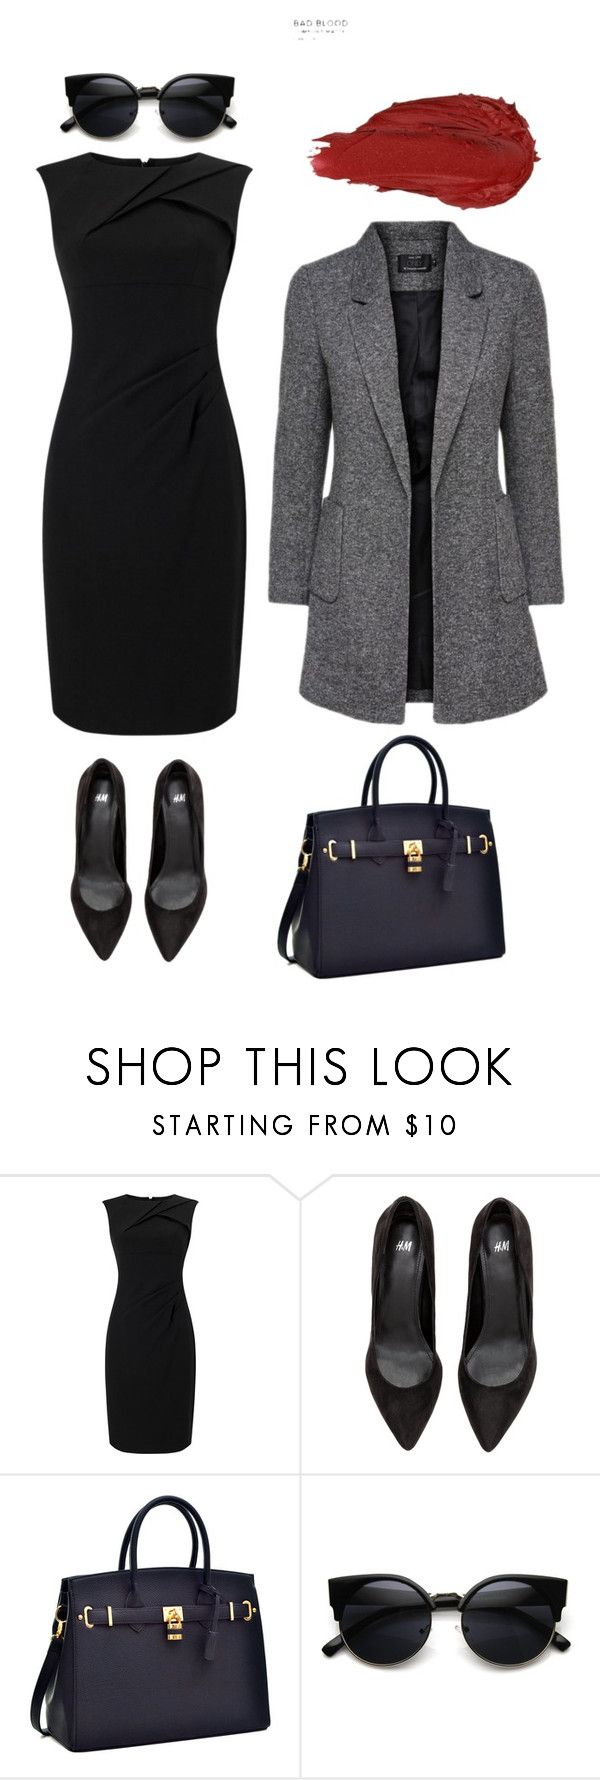 """Look 2 - WILSONS"" by kirravanblanken on Polyvore featuring Adrianna Papell and Urban Decay"